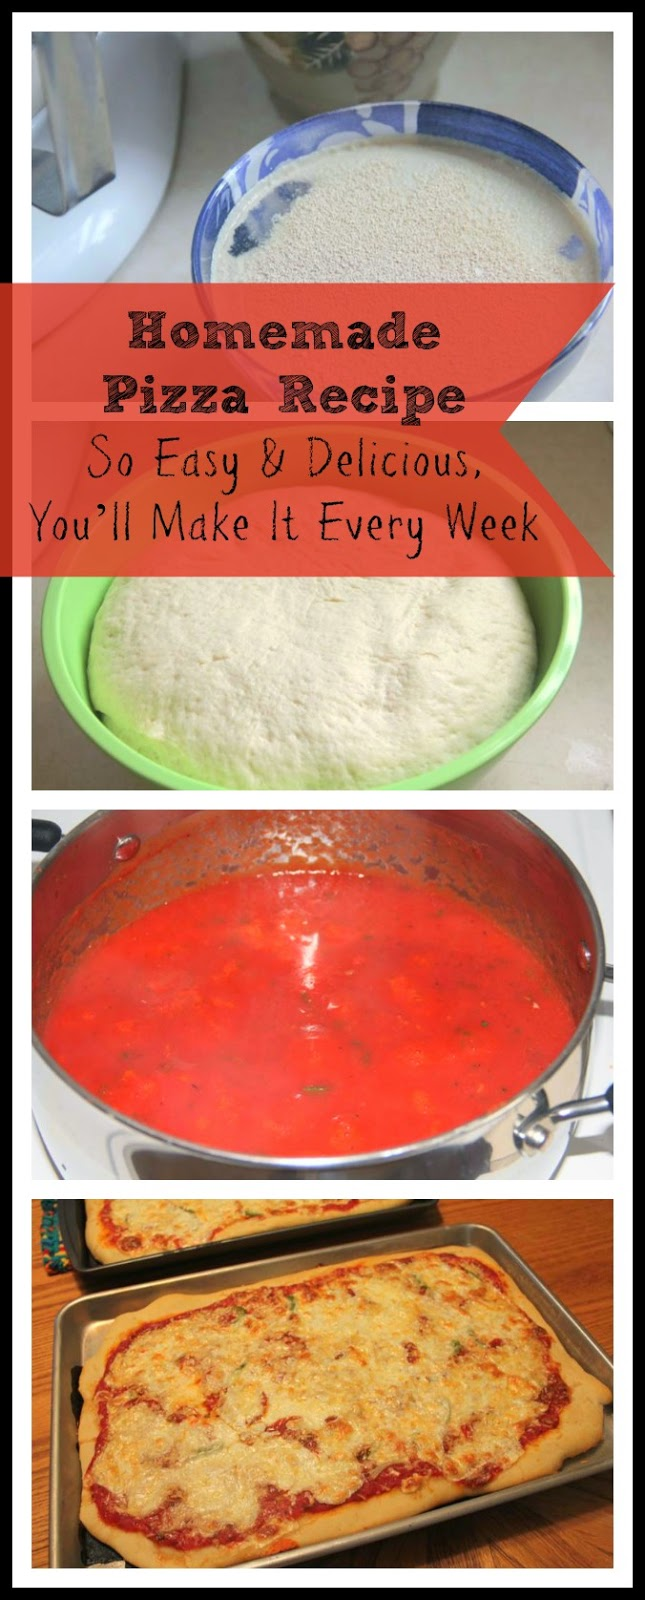 http://thriftyniftymommy.com/2014/05/homemade-pizza-recipe-easy-delicious-youll-make-every-week.html